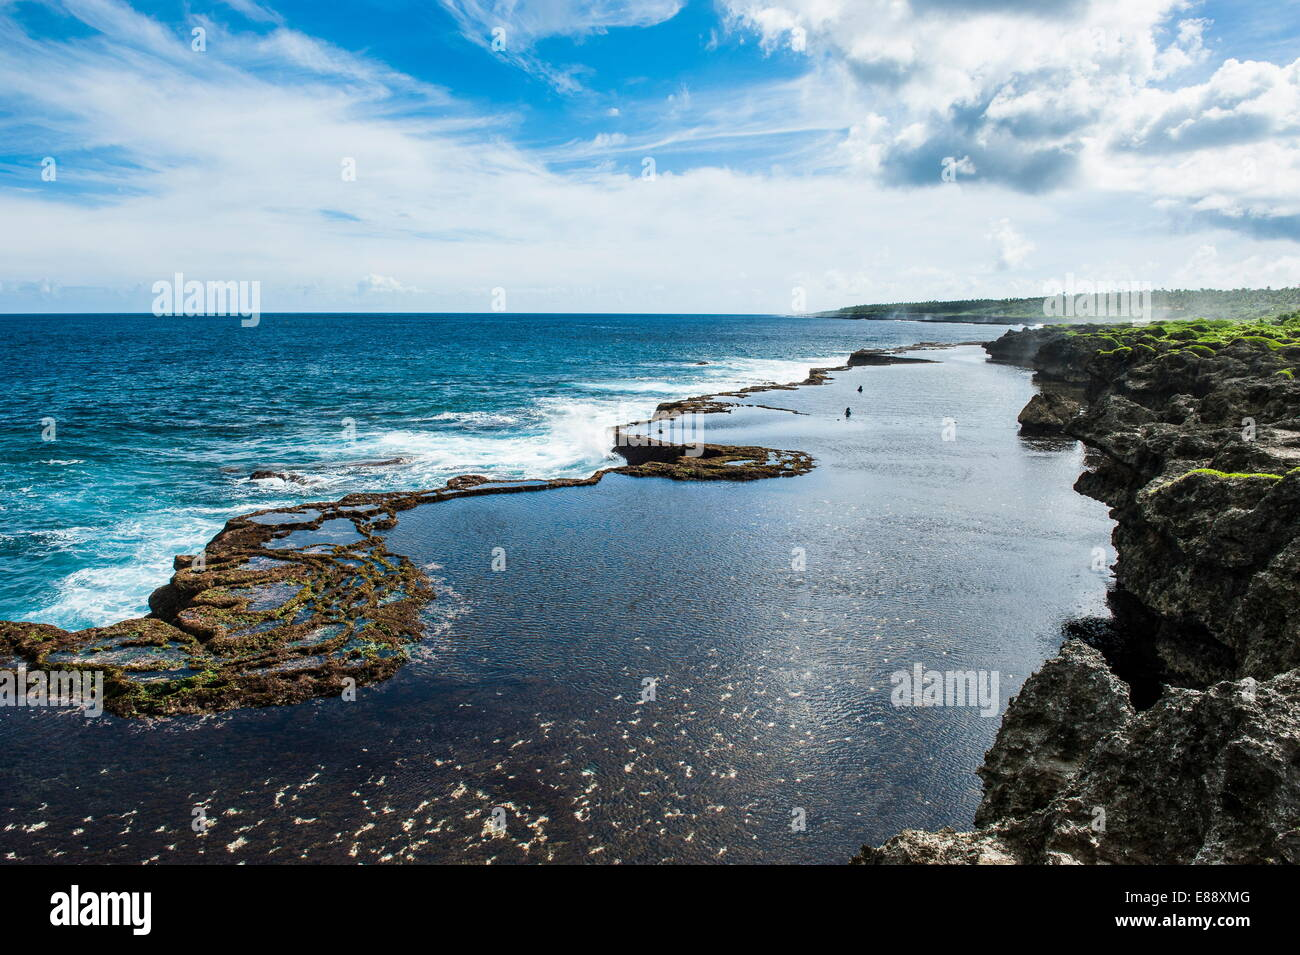 Mapu'a 'a Vaea Blowholes, Tongatapu, Tonga, South Pacific, Pacific - Stock Image